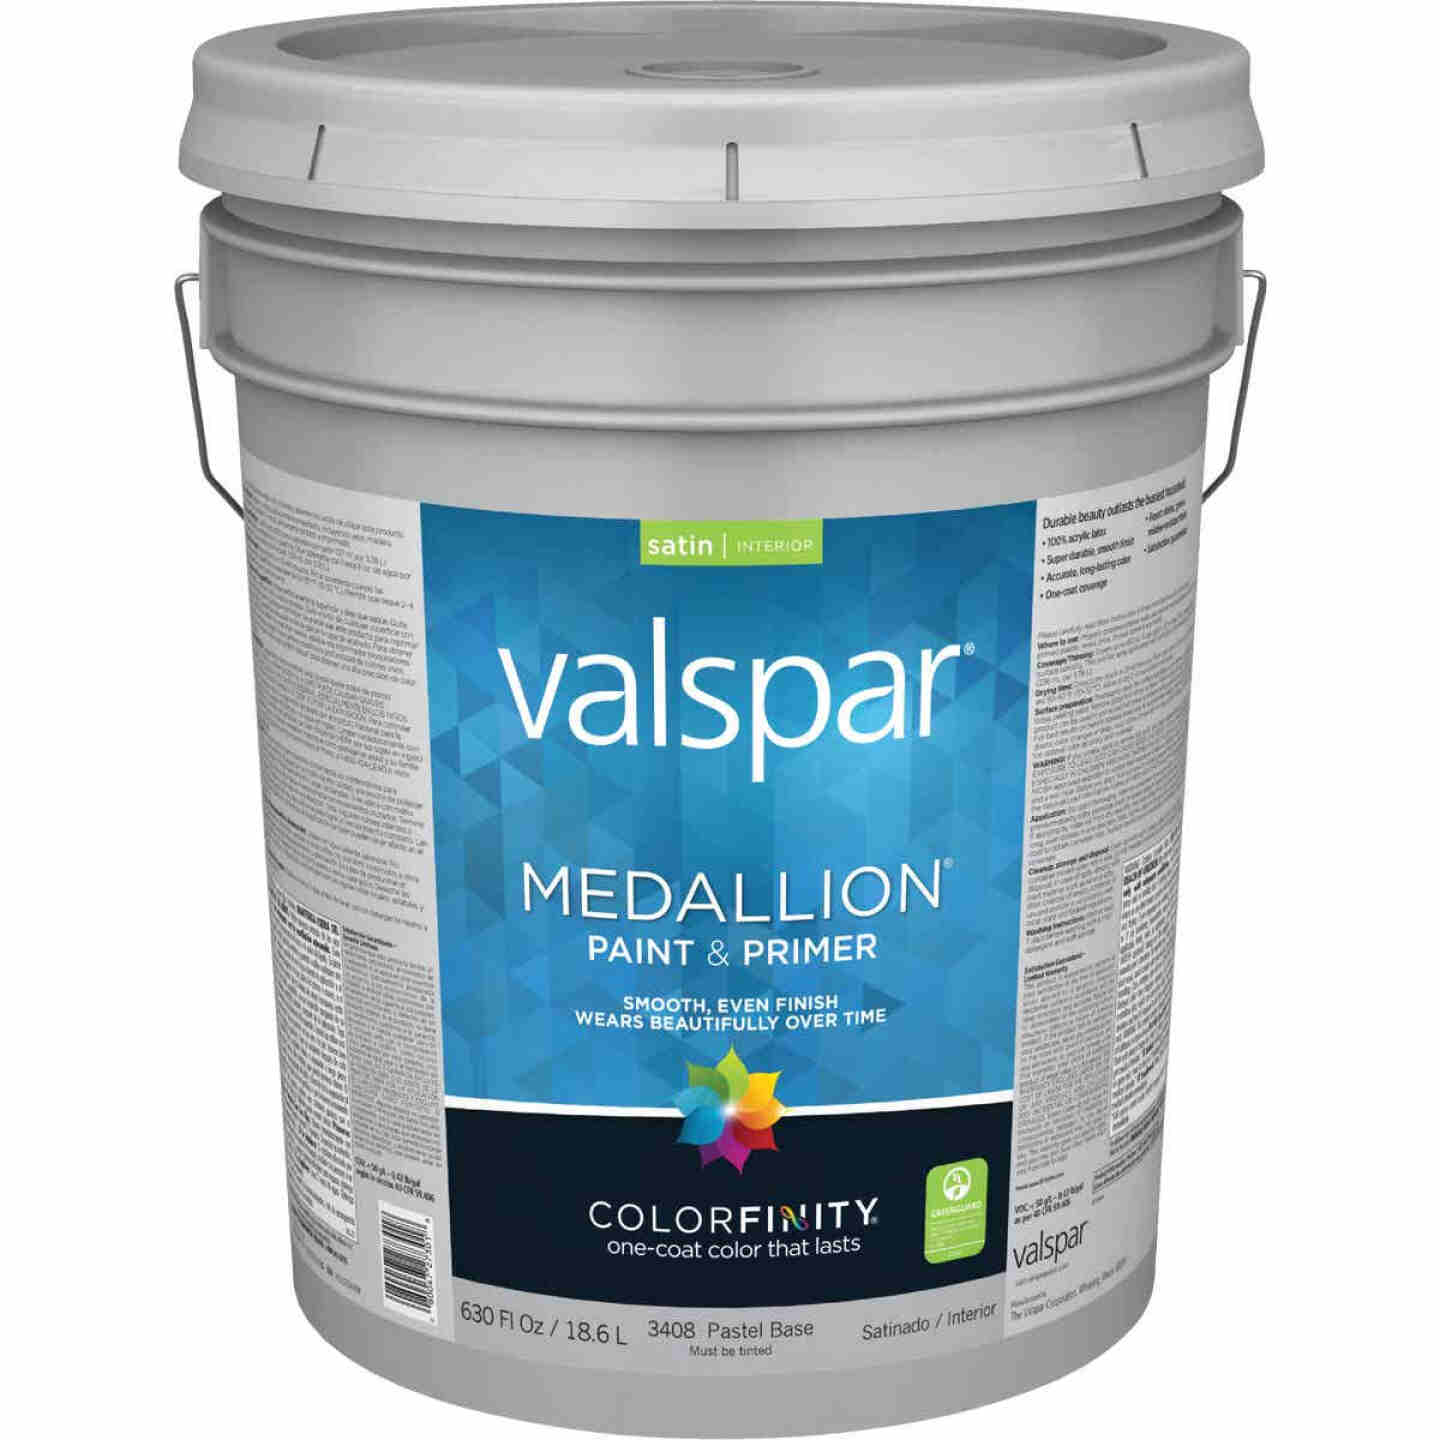 Valspar Medallion 100% Acrylic Paint & Primer Satin Interior Wall Paint, Pastel Base, 5 Gal. Image 1